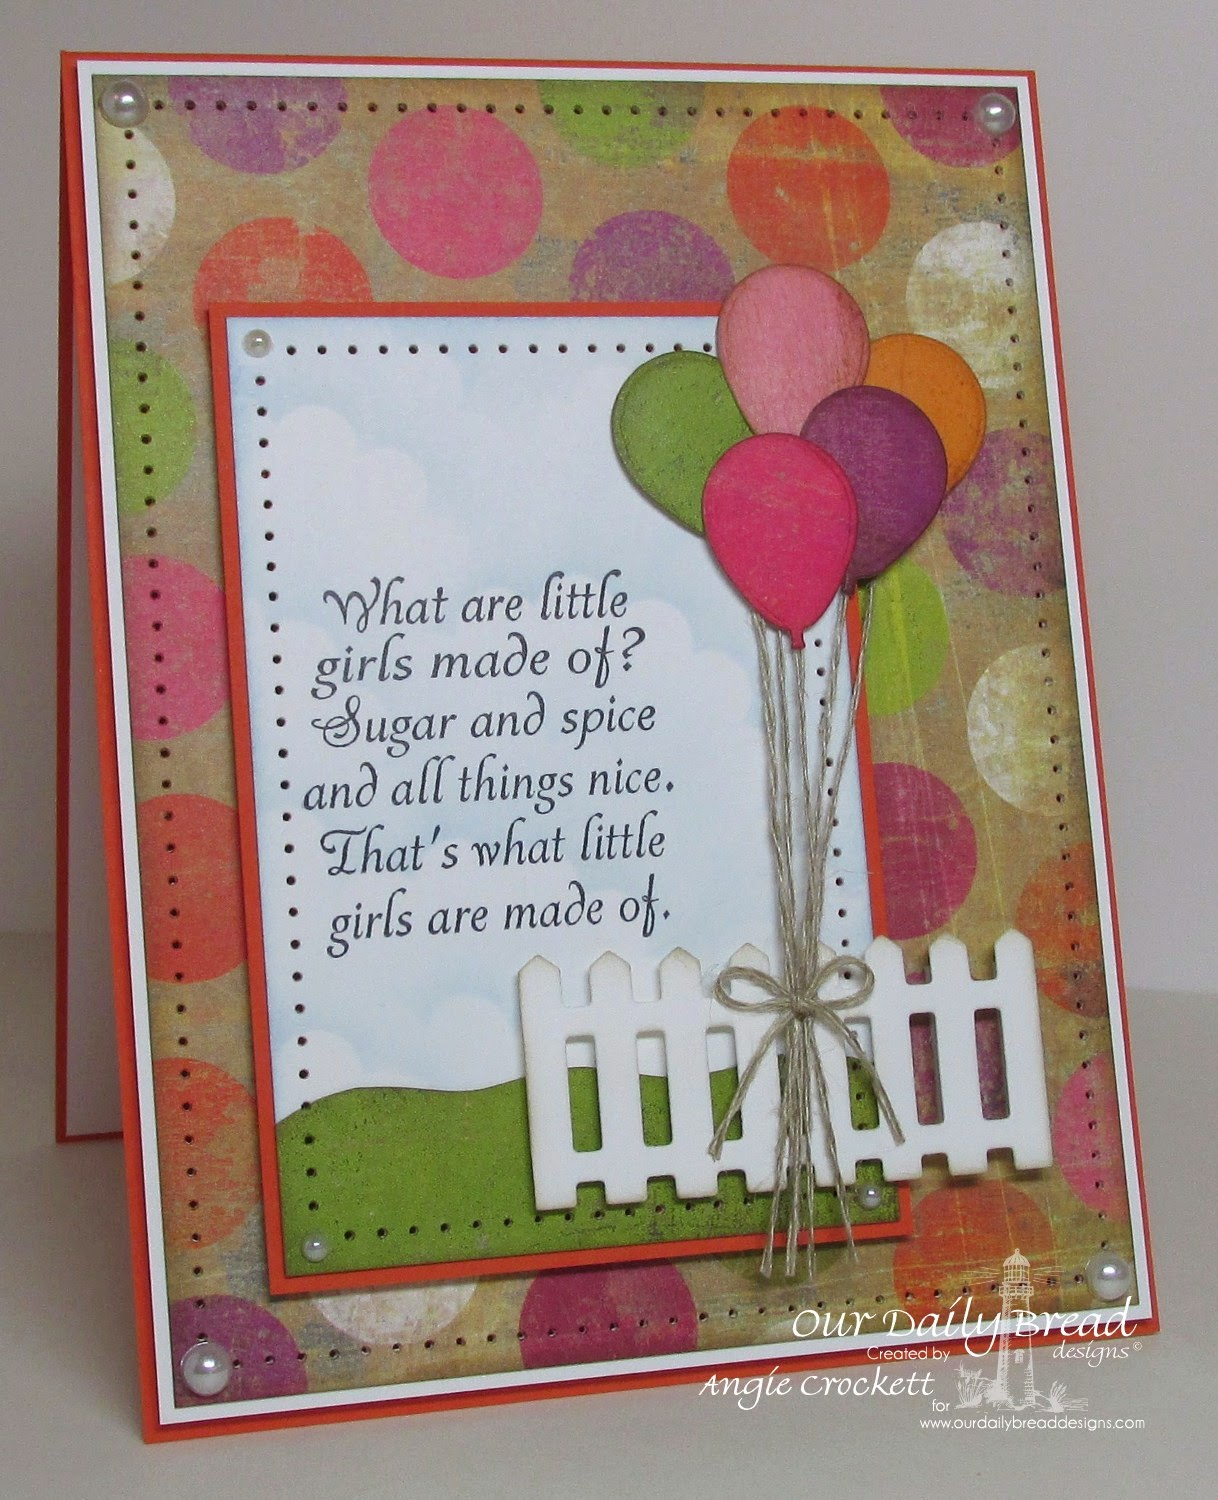 ODBD Little Girls, ODBD Custom Happy Birthday Dies, ODBD Fence Die, Card Designer Angie Crockett